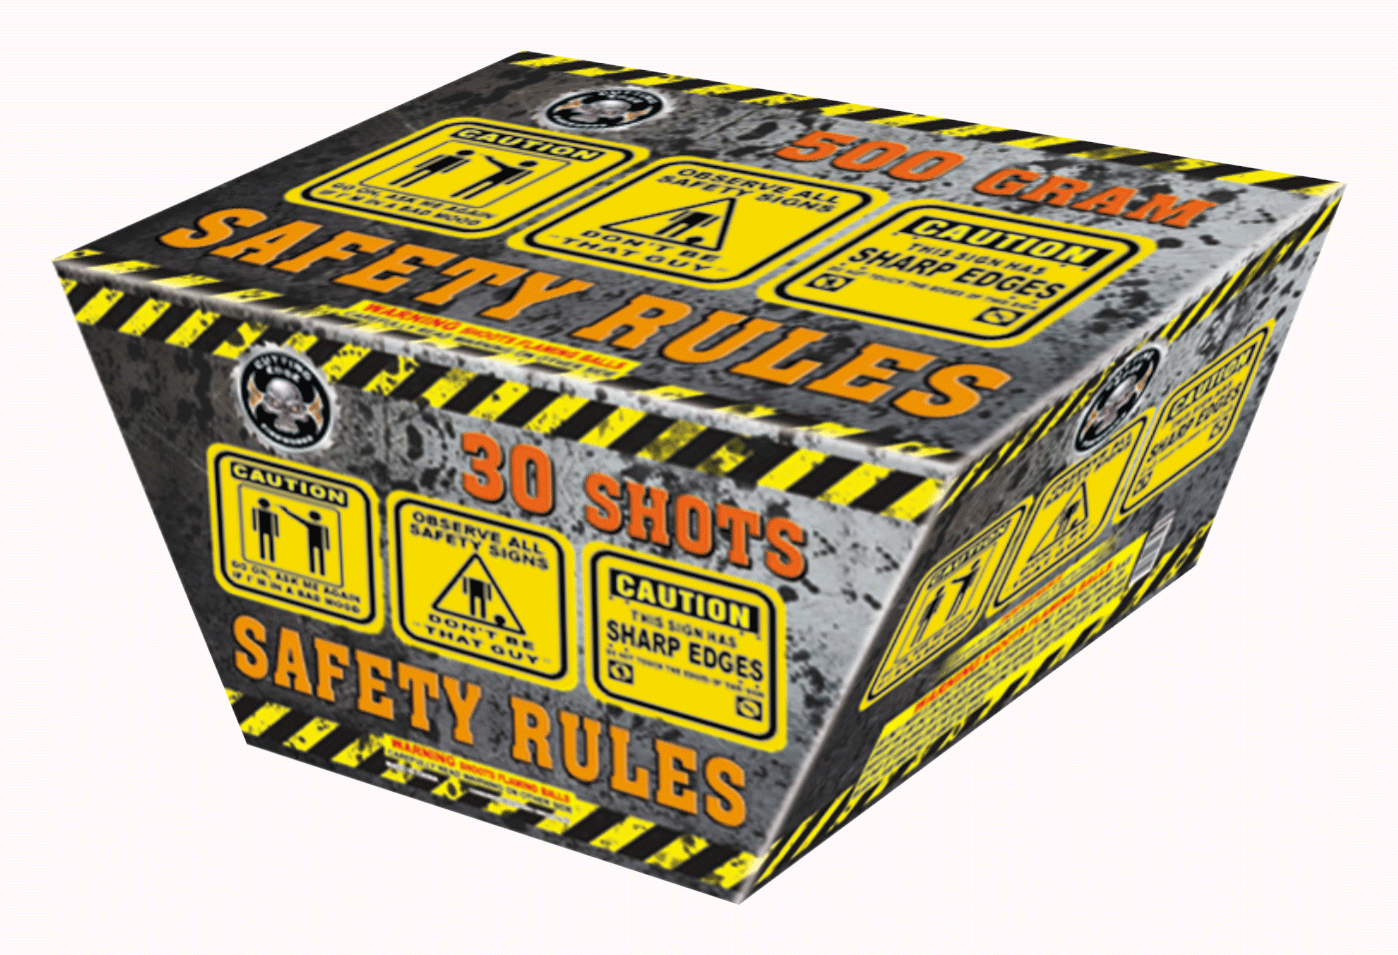 Safety Rules 30 shot